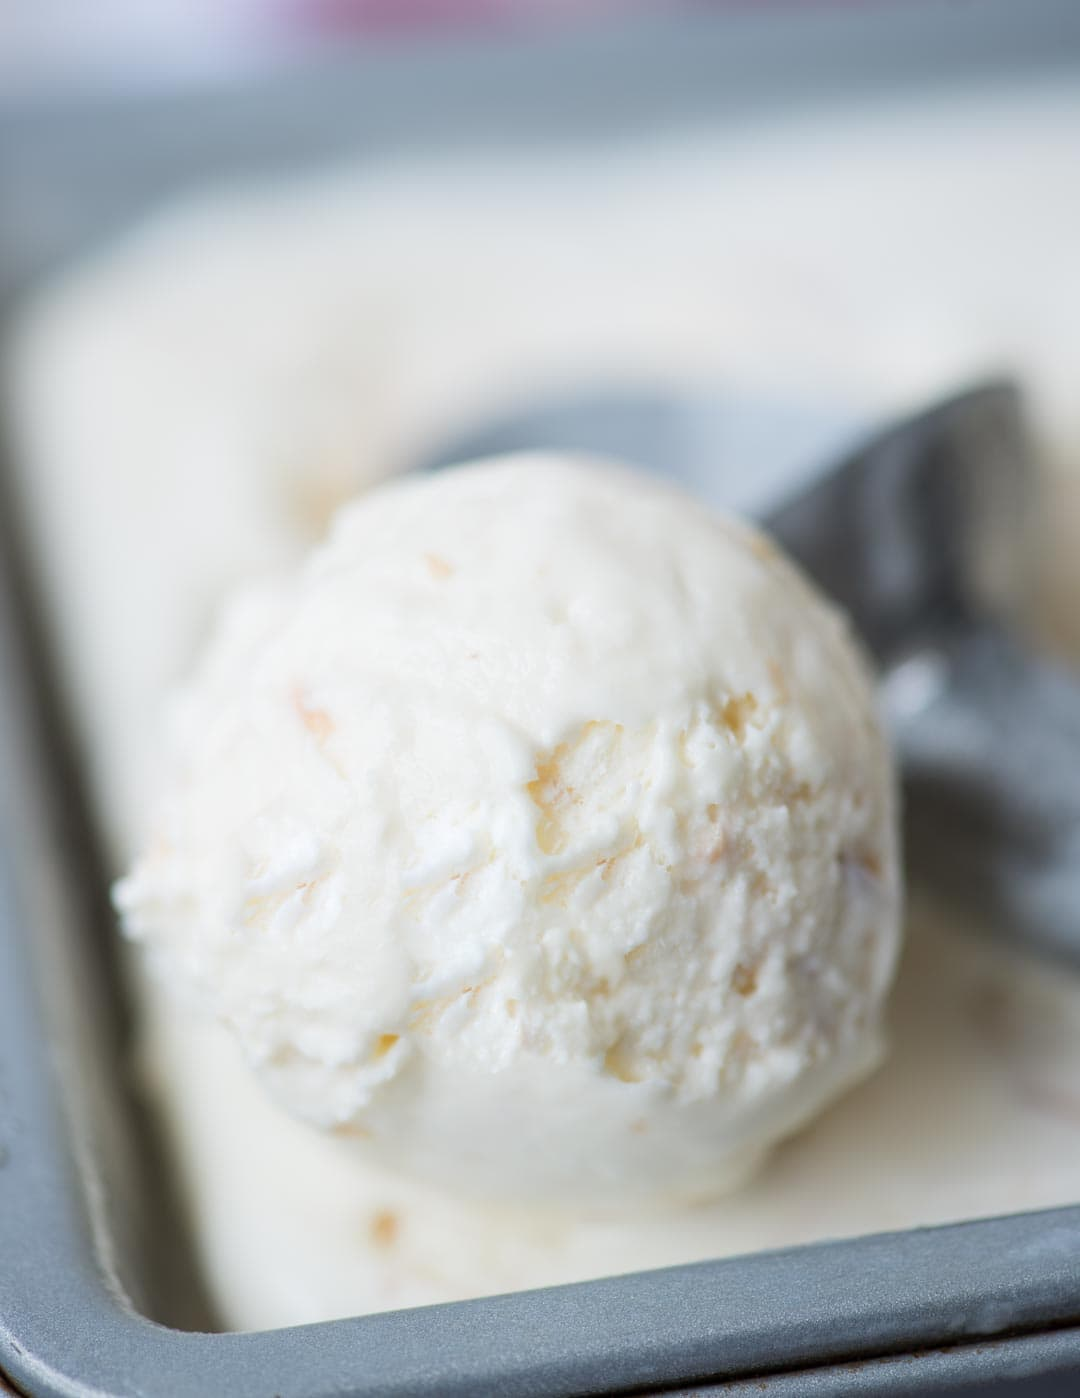 With real coconut flavour from Coconut milk, this Coconut Ice Cream is so easy to make. It is no churn and you don't even need an Ice cream maker. Beautiful light texture and Creamy, this Coconut Ice Cream is a must try in Summer.